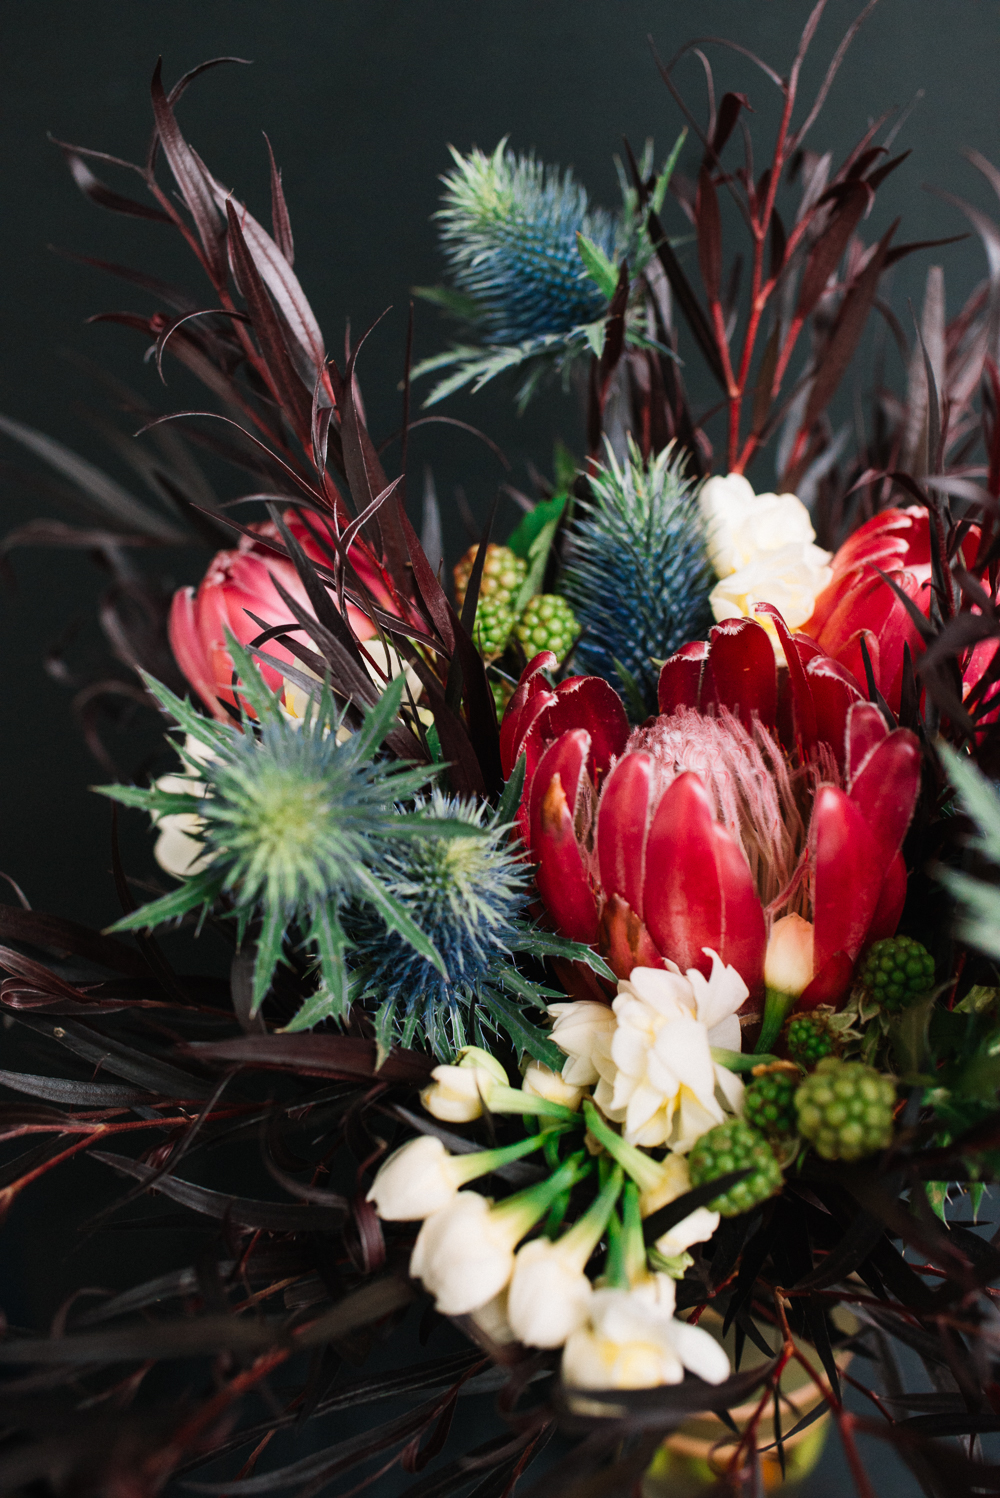 Mission de Flores | Floral Design Week 1/4/16